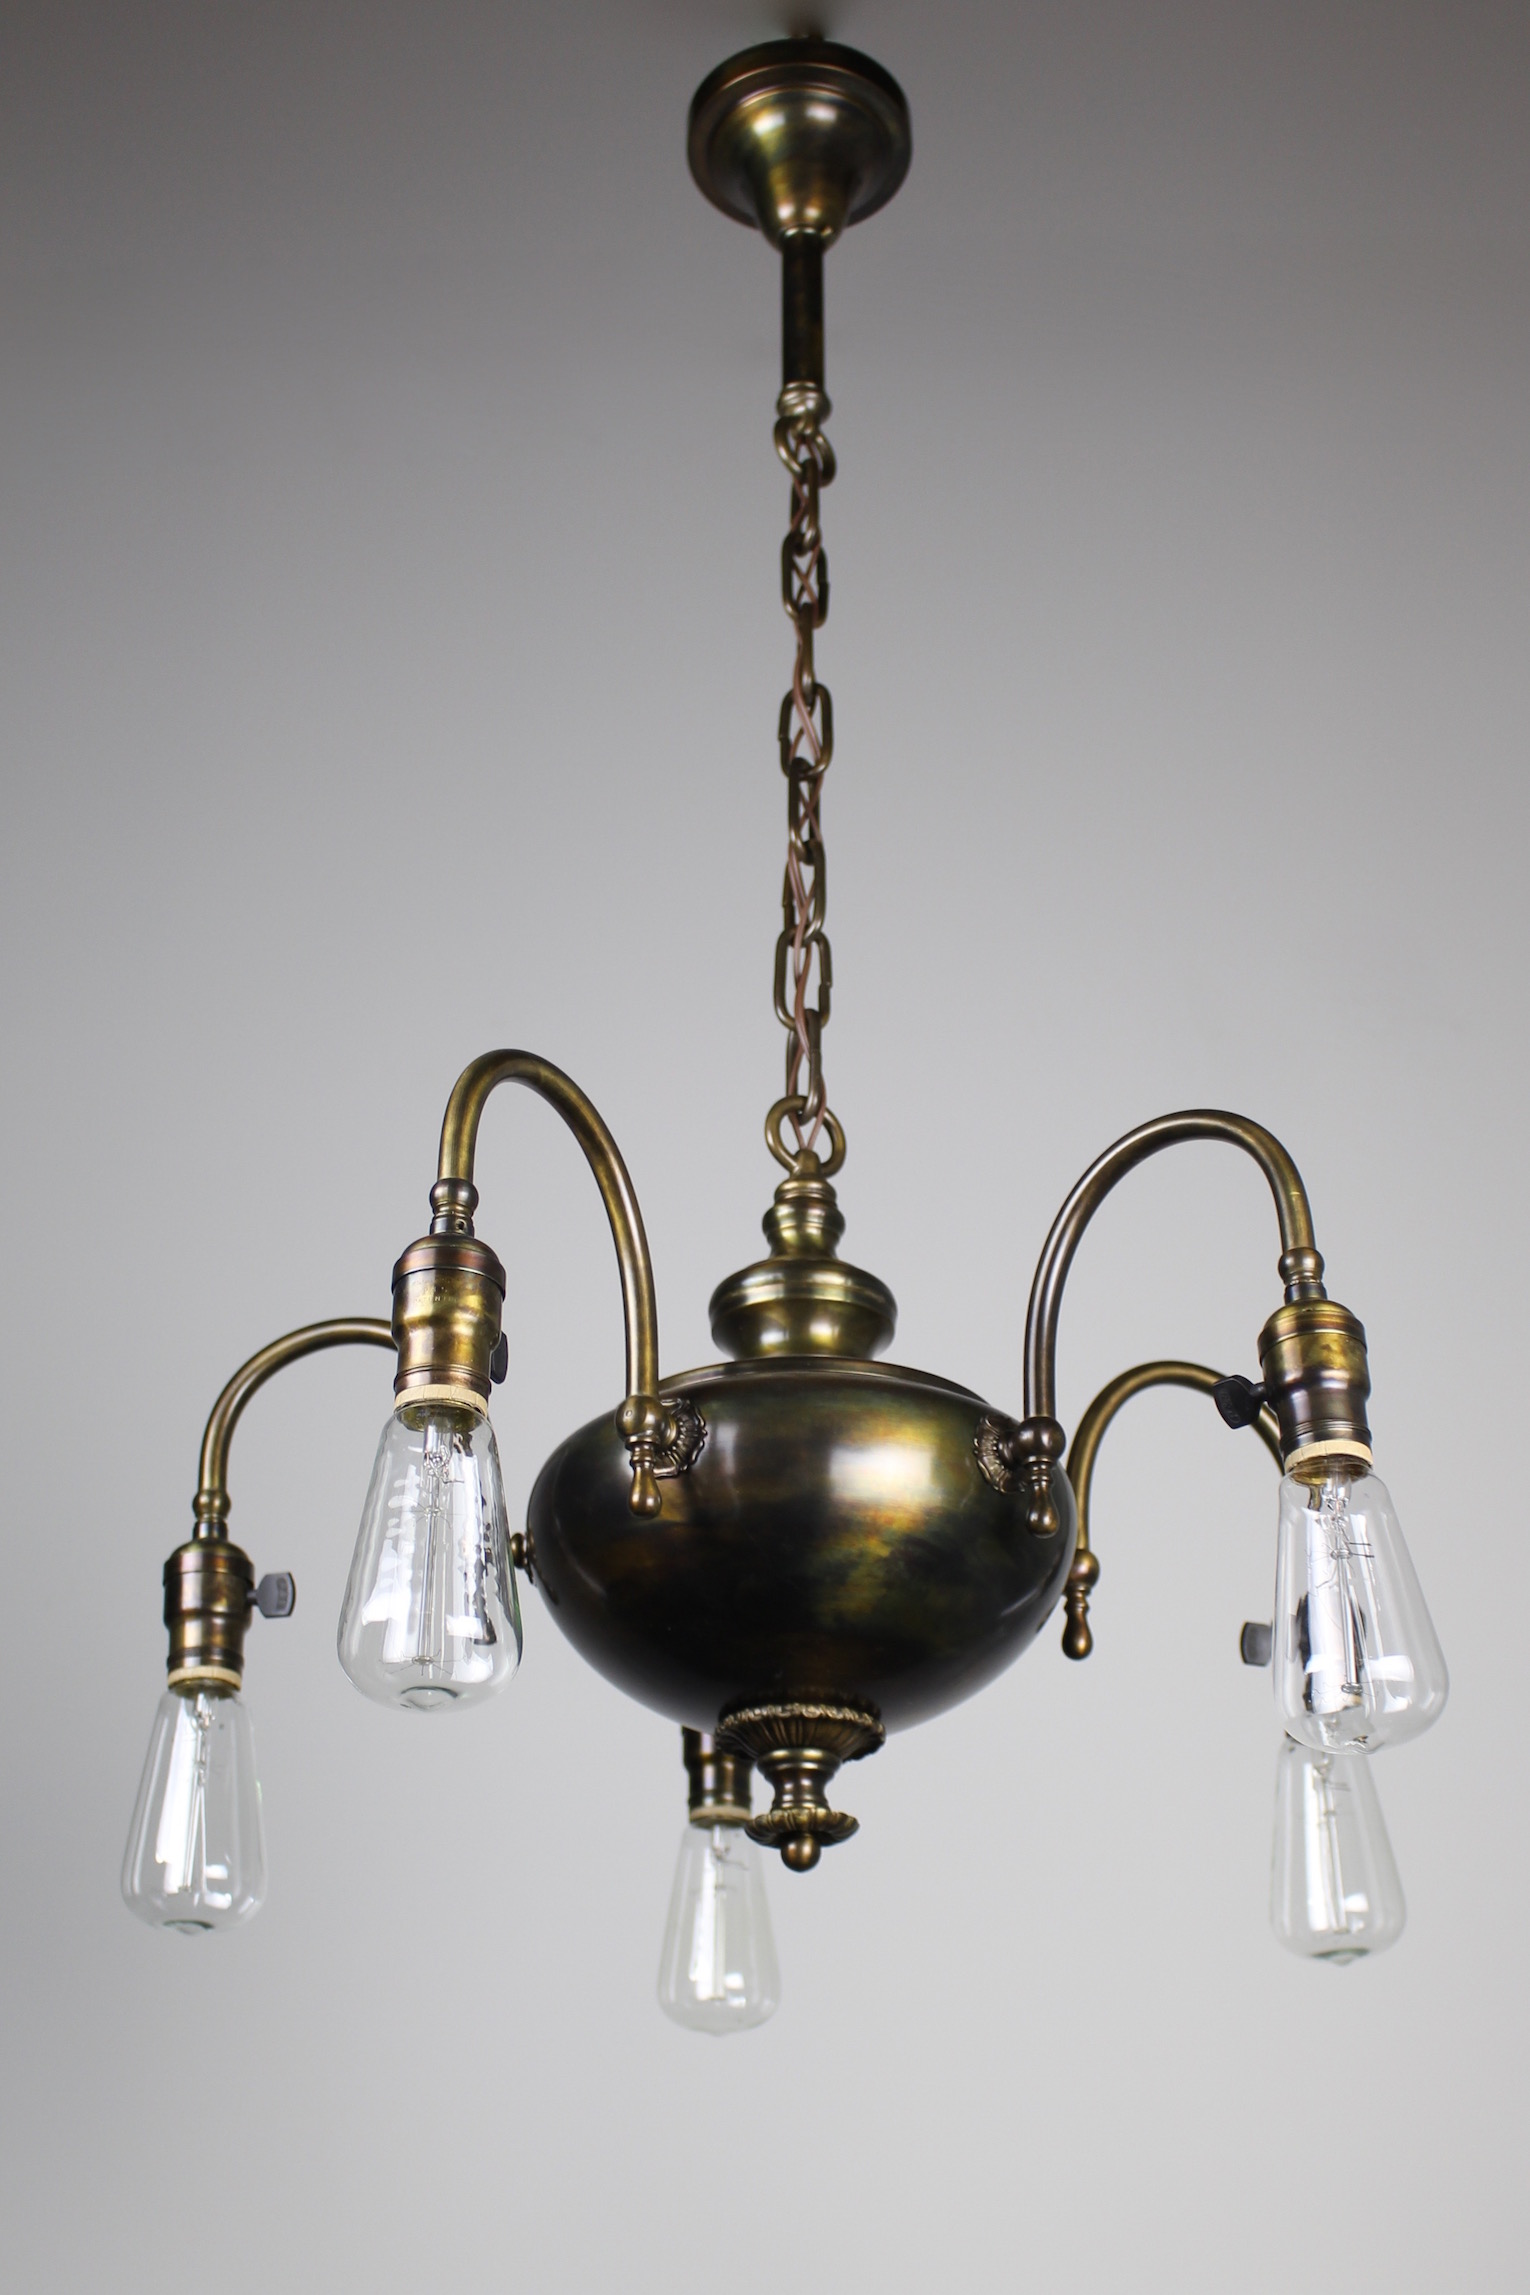 antique chandeliers antique lighting antique pendant fixtures